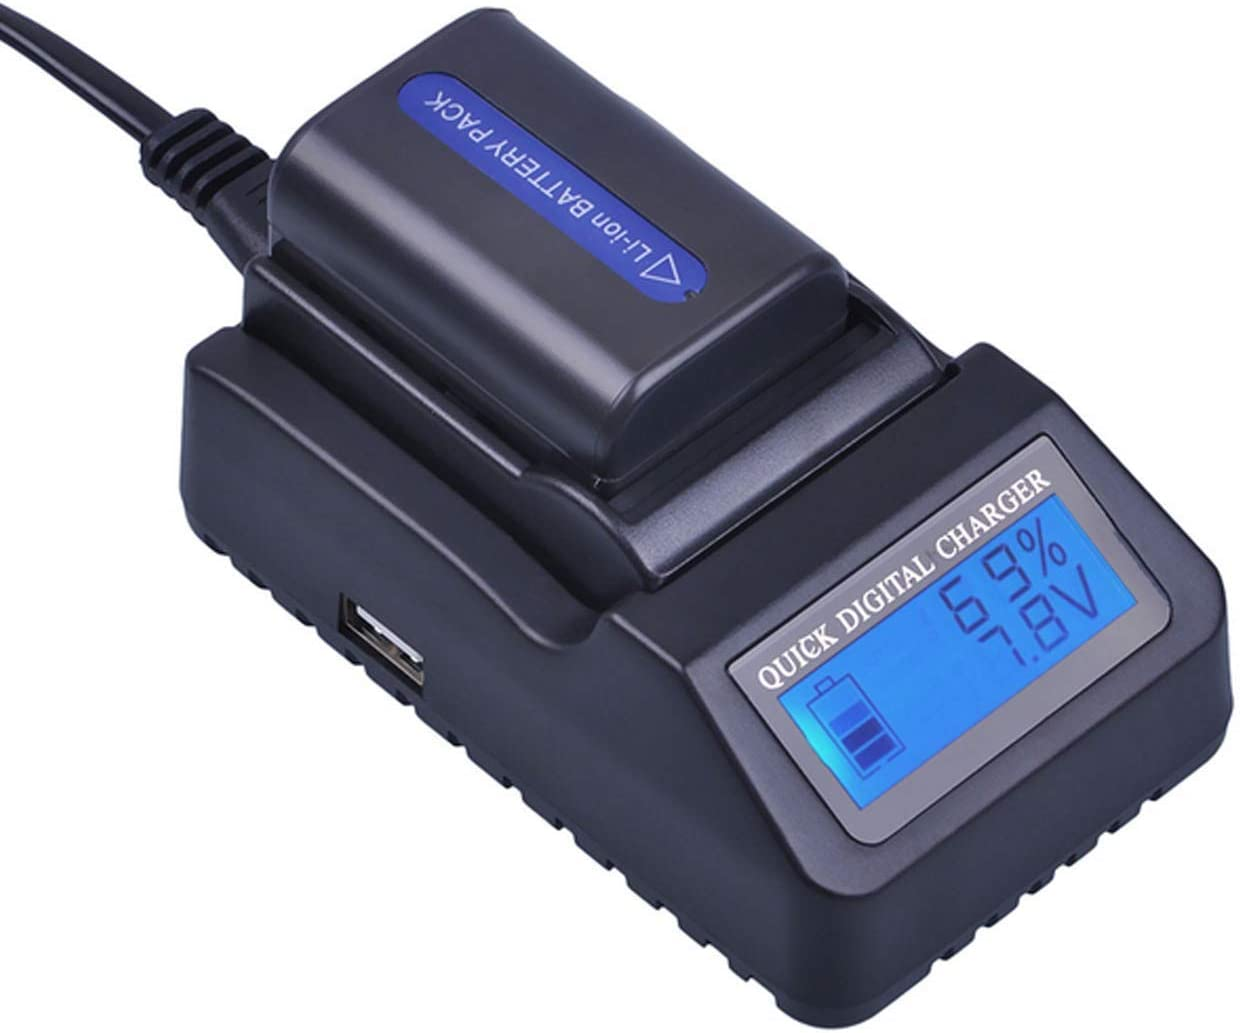 USB Dual Battery Charger for Sony DCR-TRV740 DCR-TRV940 Handycam Camcorder DCR-TRV840